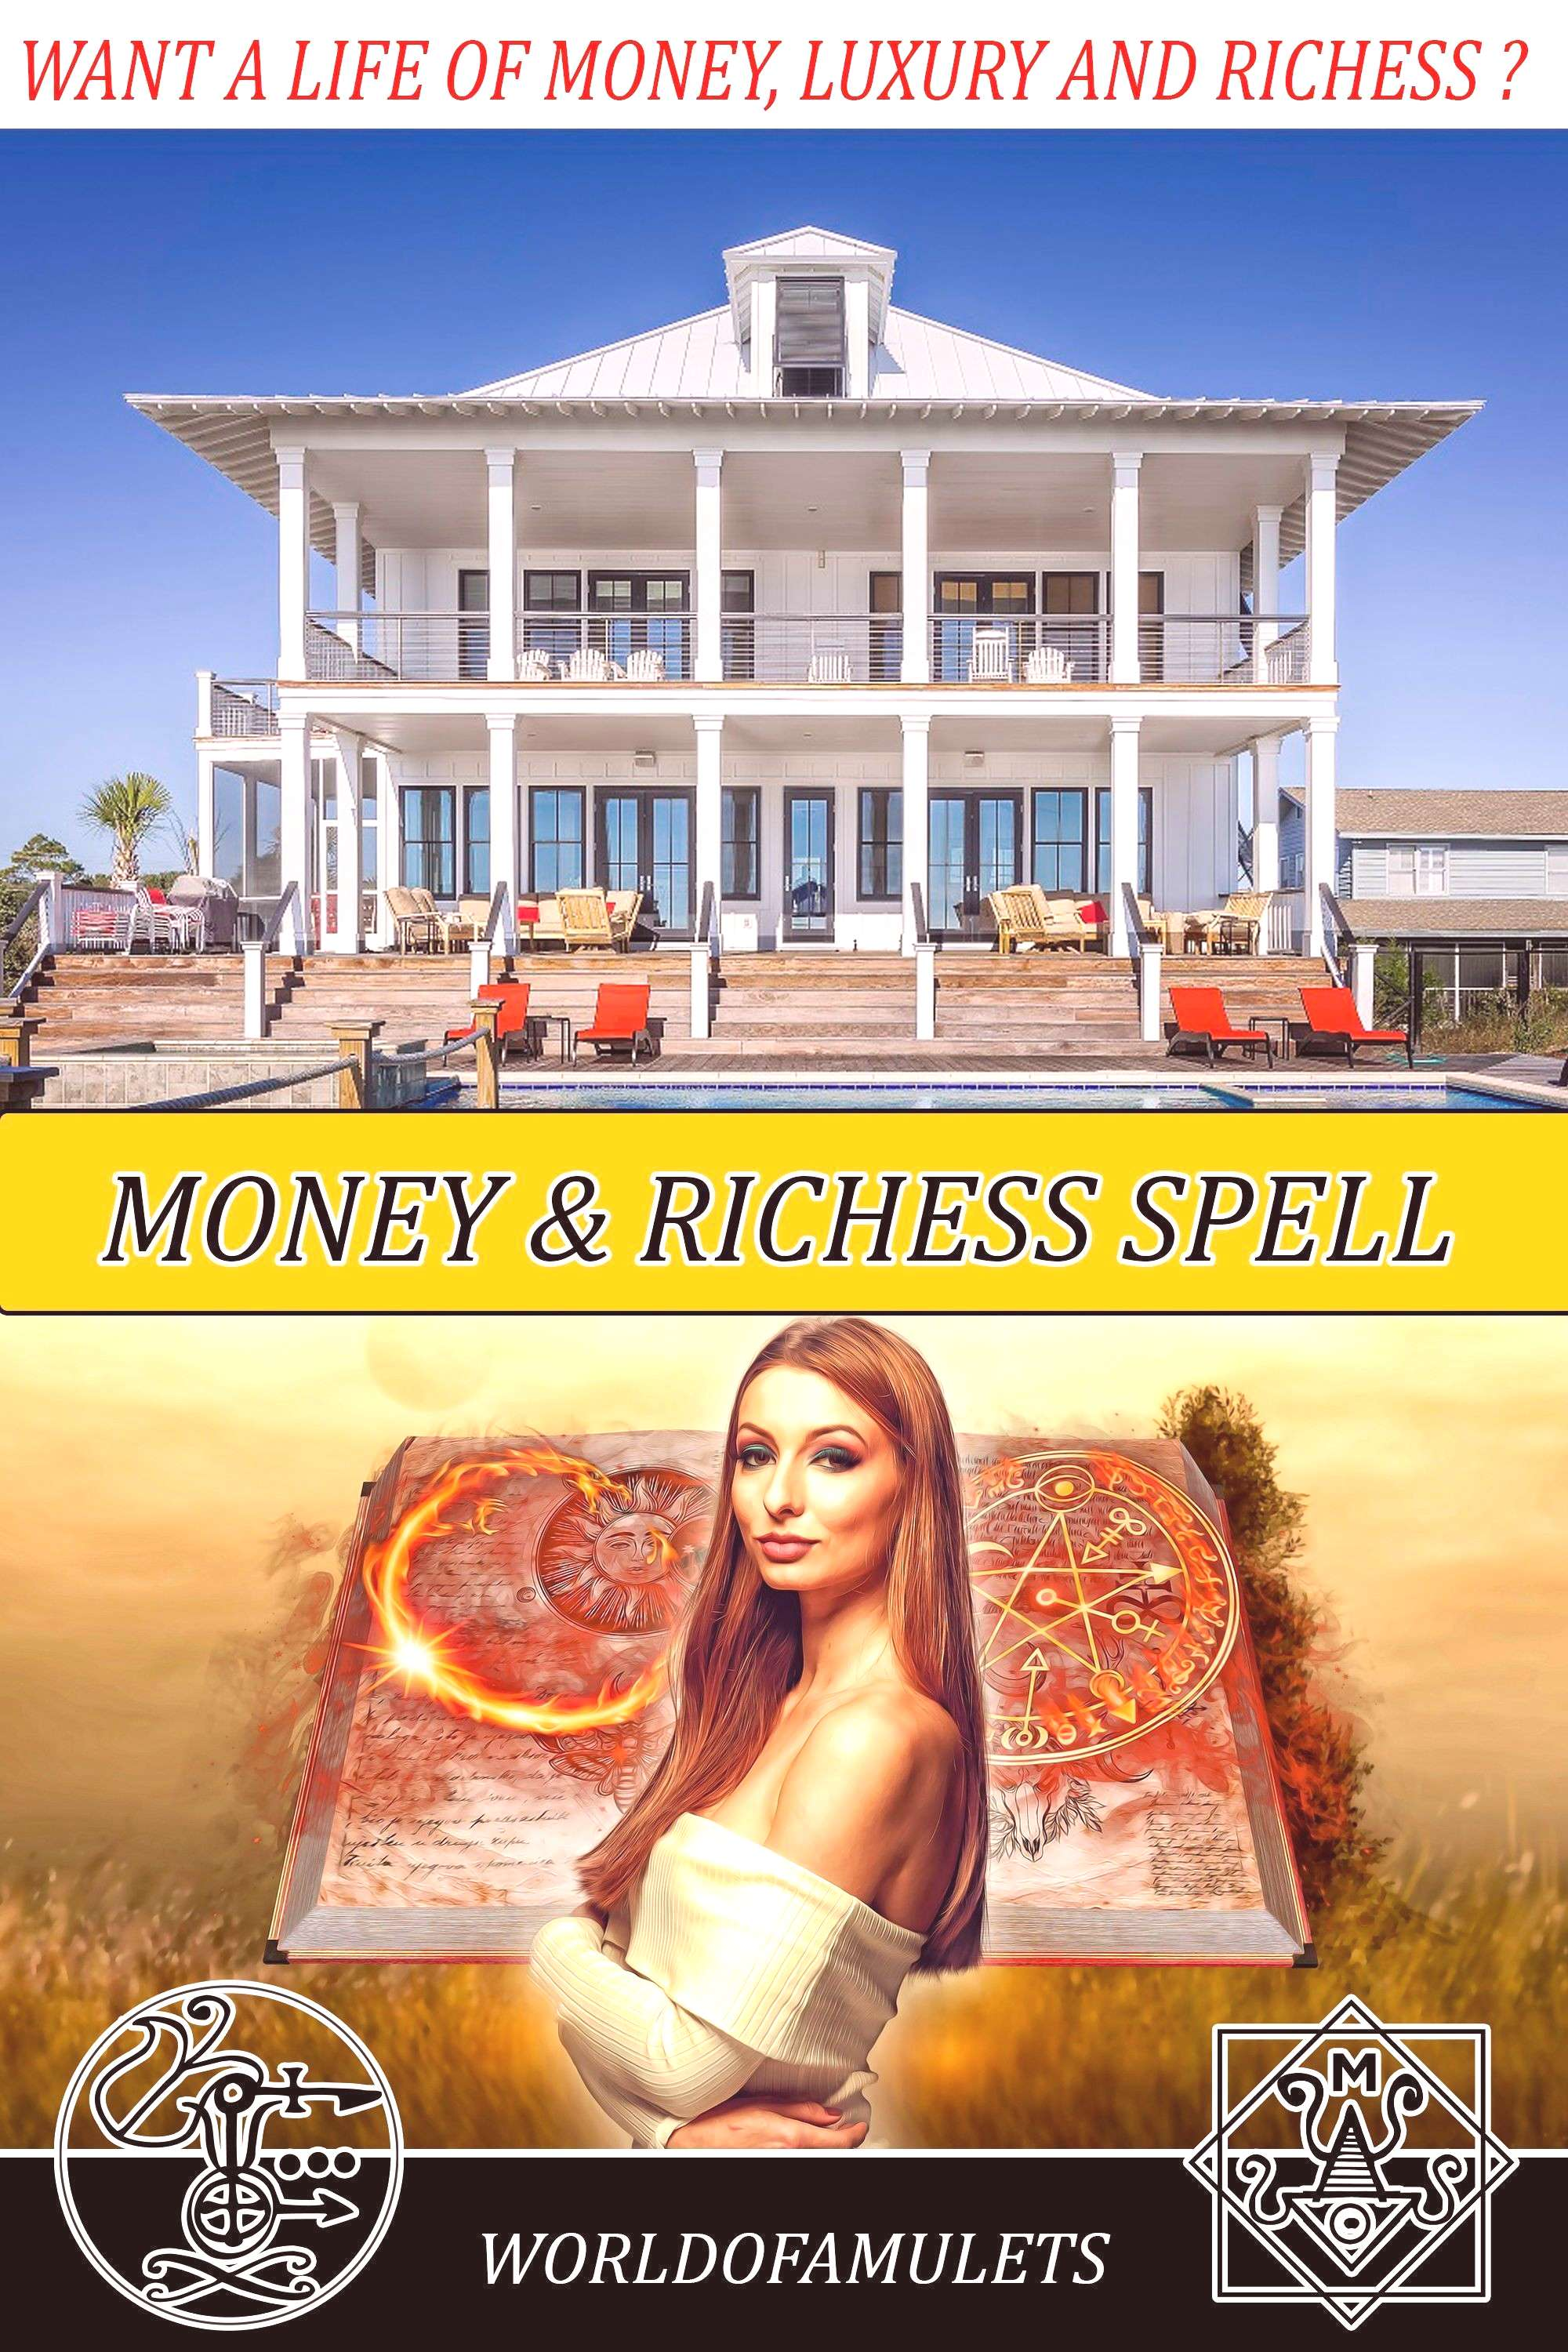 Witchcraft Wealth and Money Spell with Baal School of witchcraft and Wizardry School Beginner Witch